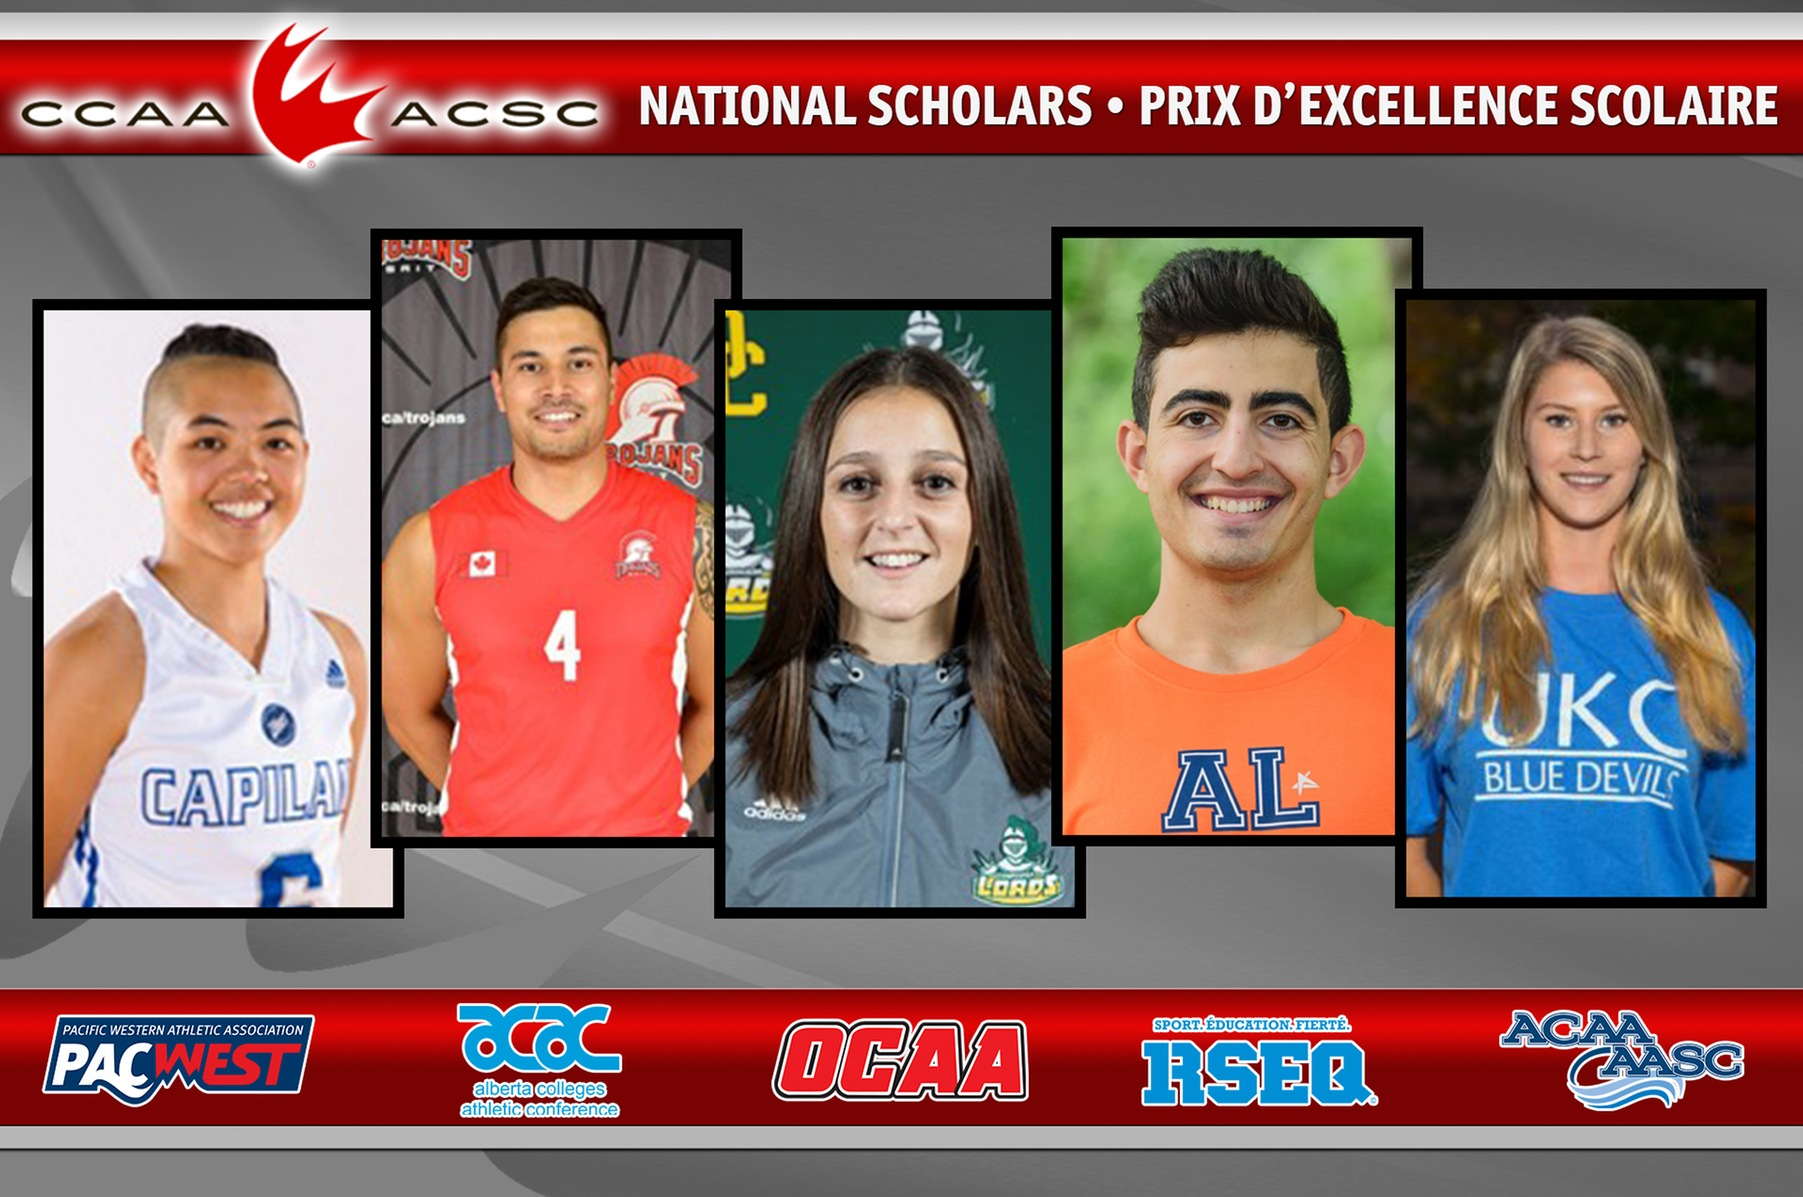 2016-17 CCAA National Scholar Award recipients